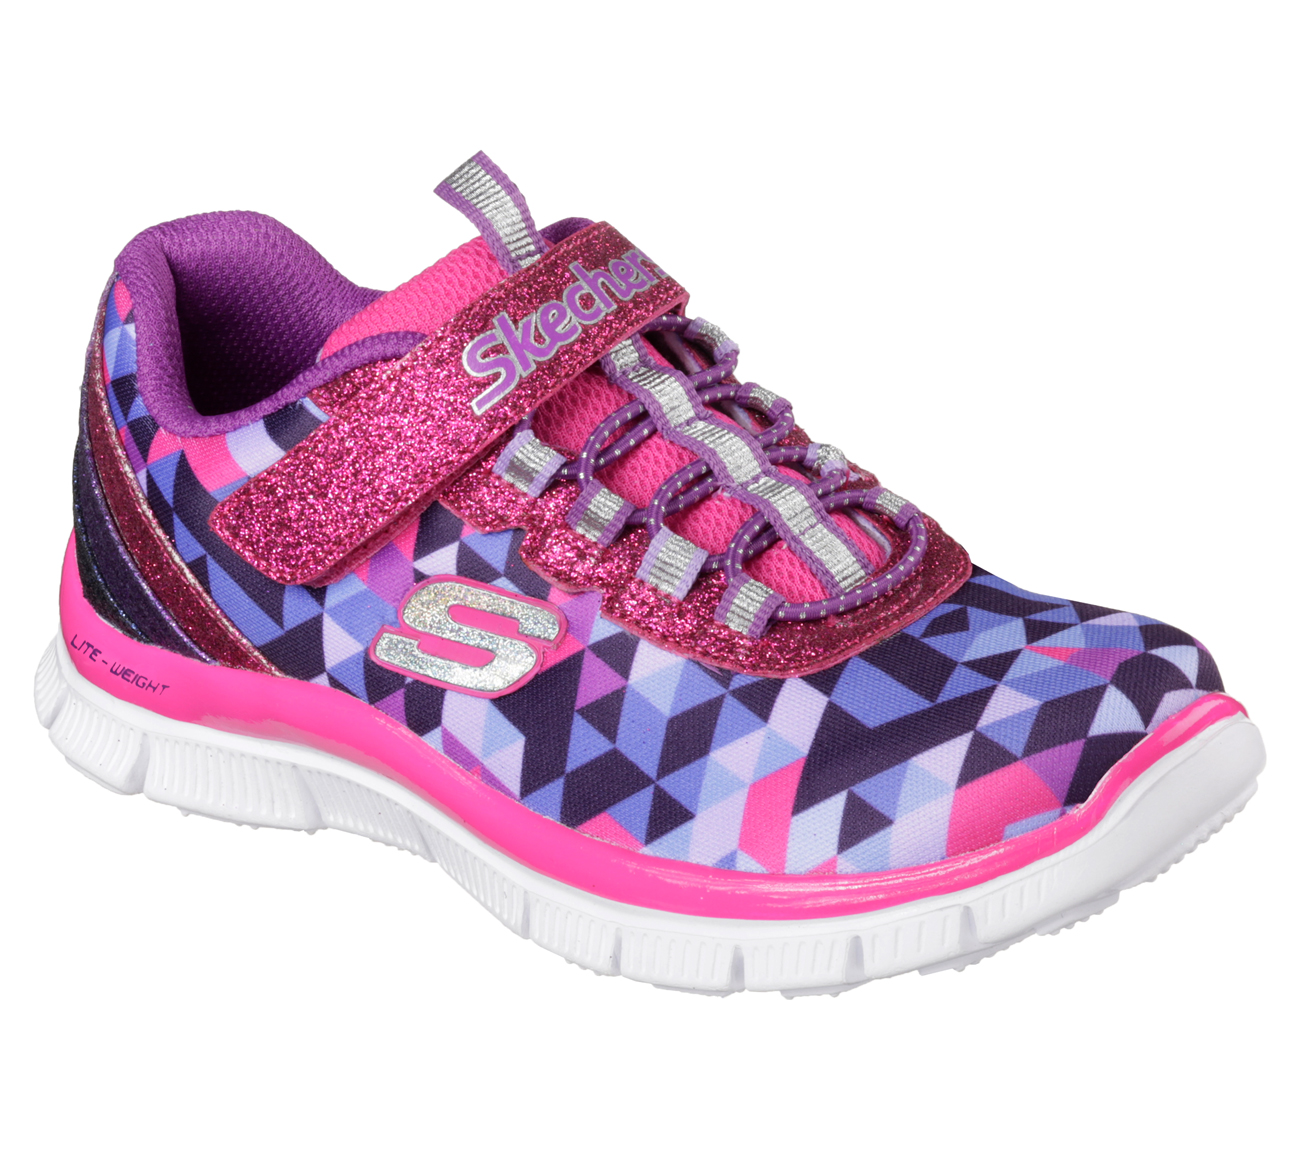 Skechers Shoes For Women With Gems